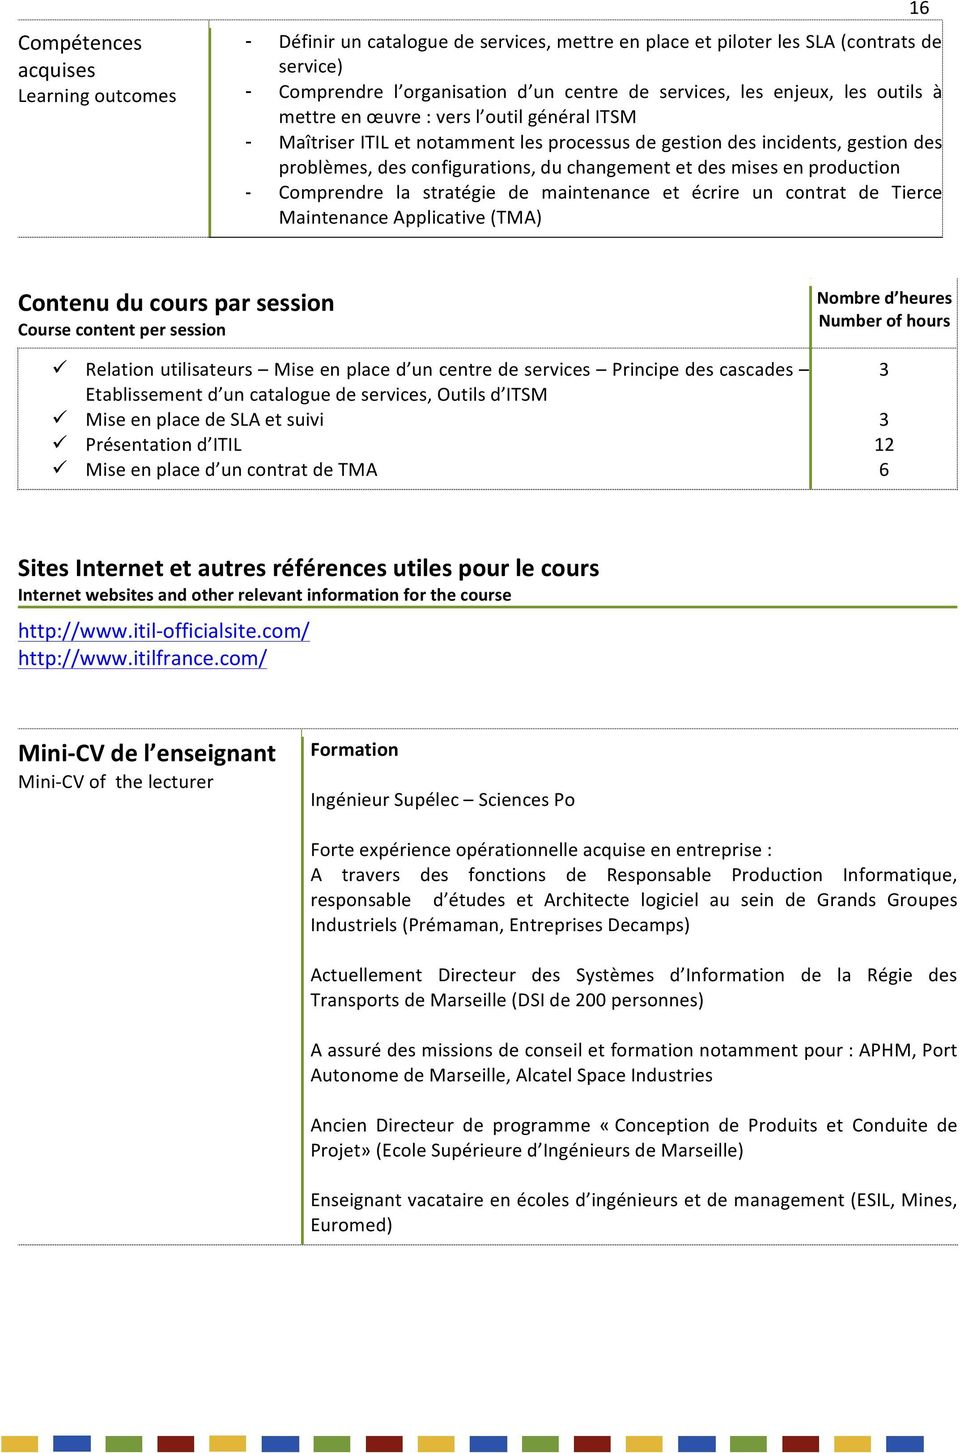 problèmes,desconfigurations,duchangementetdesmisesenproduction - Comprendre la stratégie de maintenance et écrire un contrat de Tierce MaintenanceApplicativeTMA) Relationutilisateurs Miseenplaced